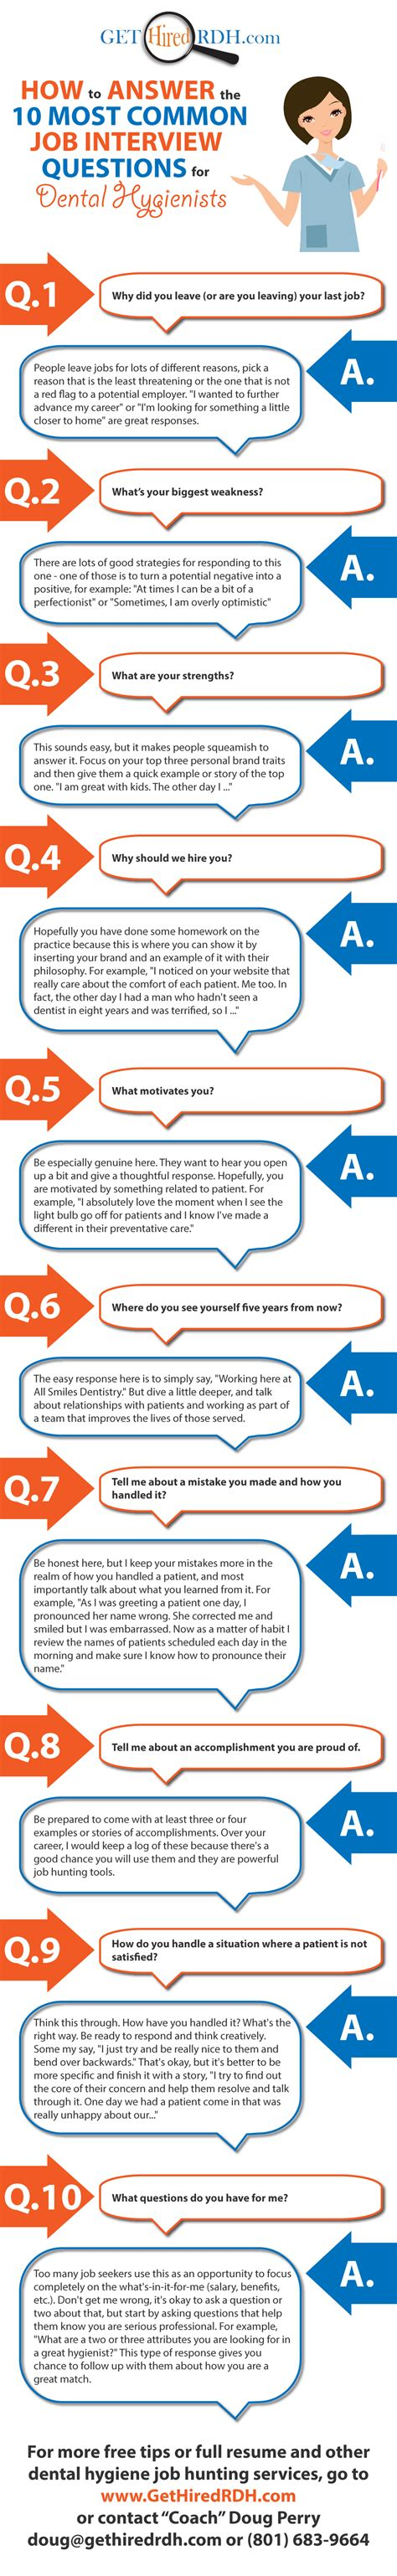 how to answer the 10 most common questions for dental hygienists get more at